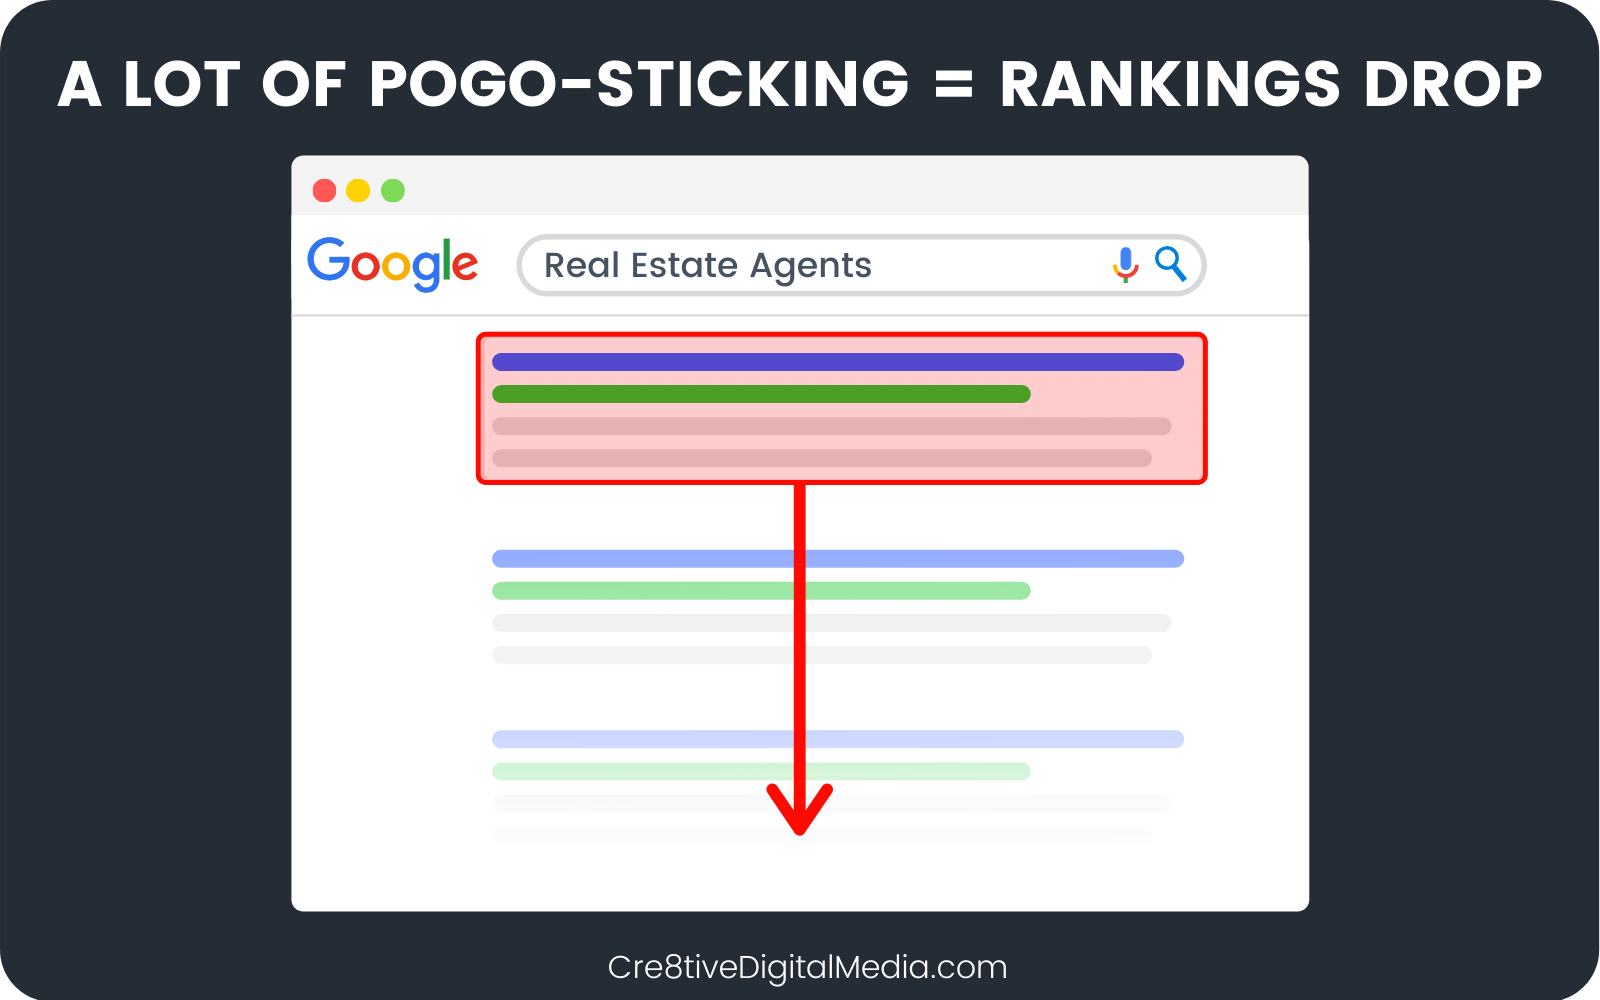 A Lot of Pogo Sticking = drop in rankings